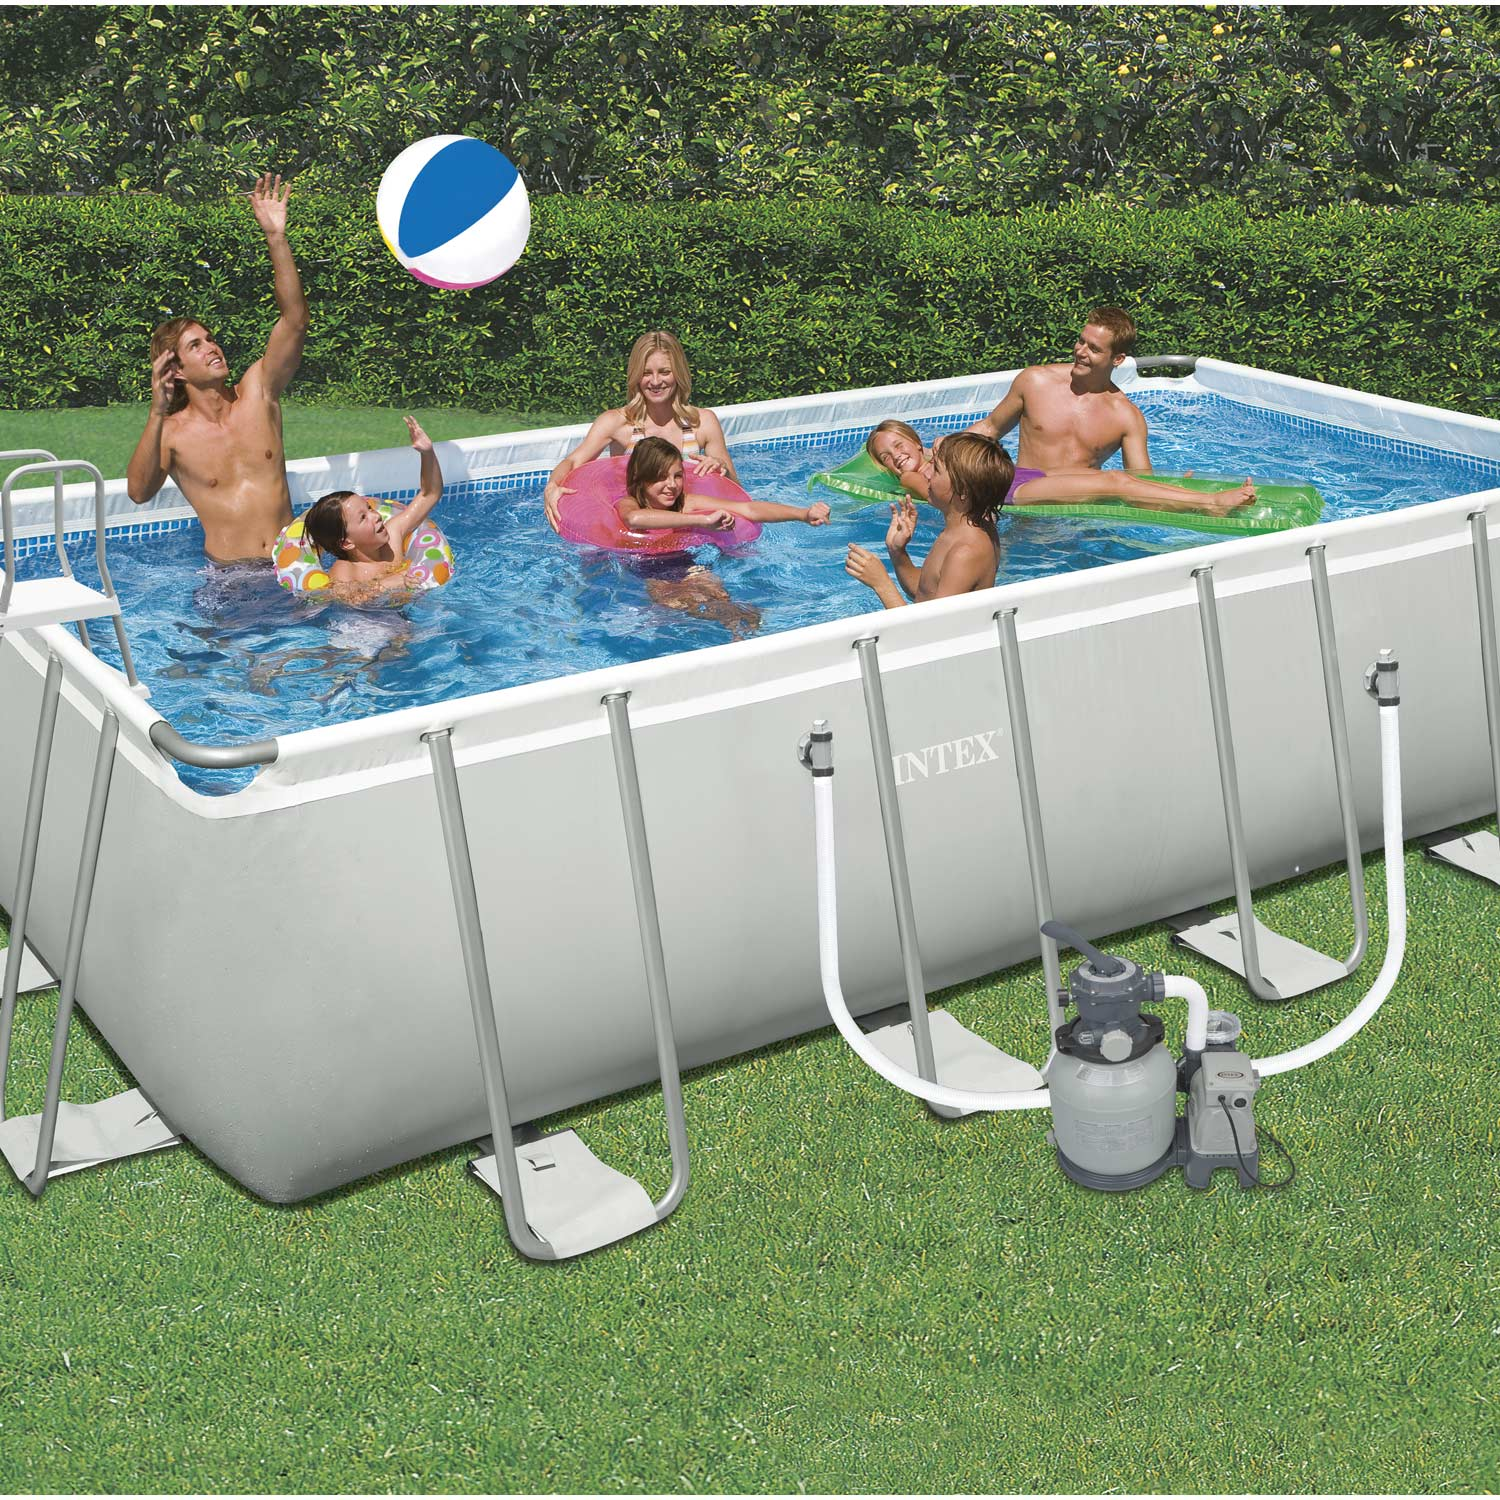 Piscine hors sol autoportante tubulaire intex l x l for Piscine rectangulaire